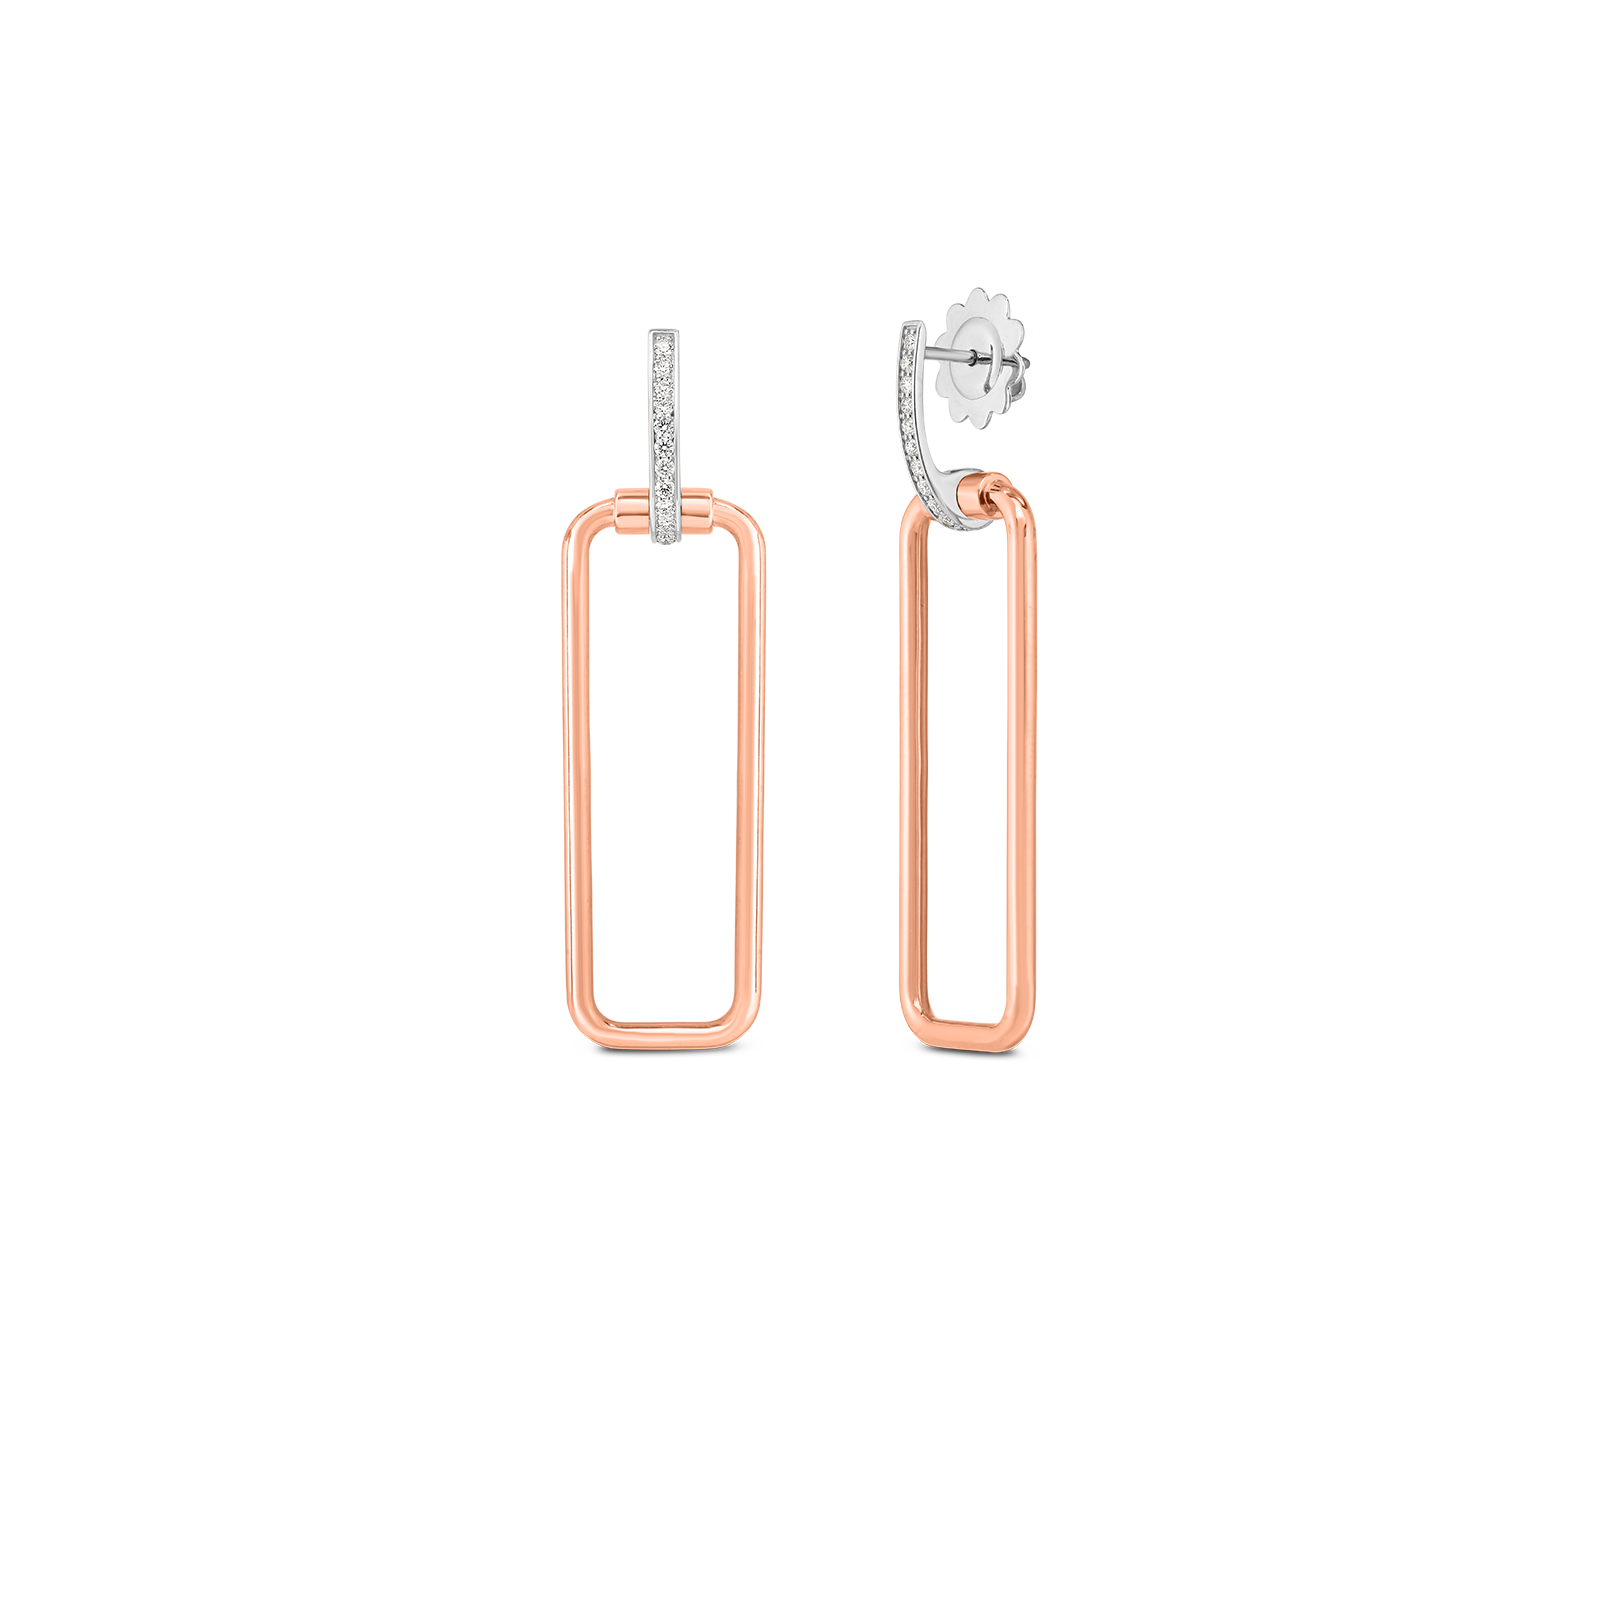 18k small square drop earring with diamond accent